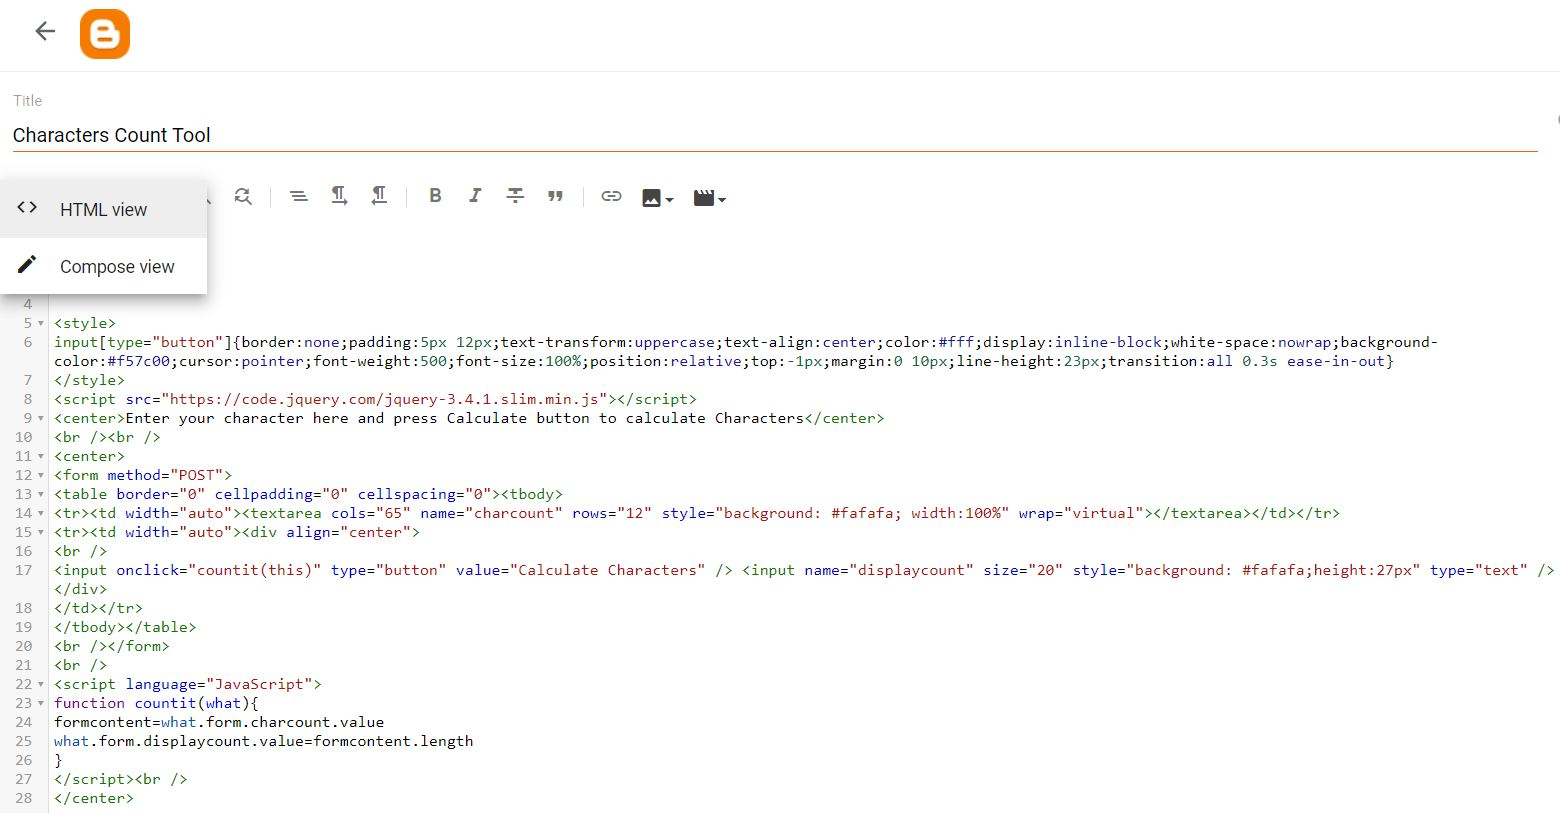 new page switch from Compose to HTML view.